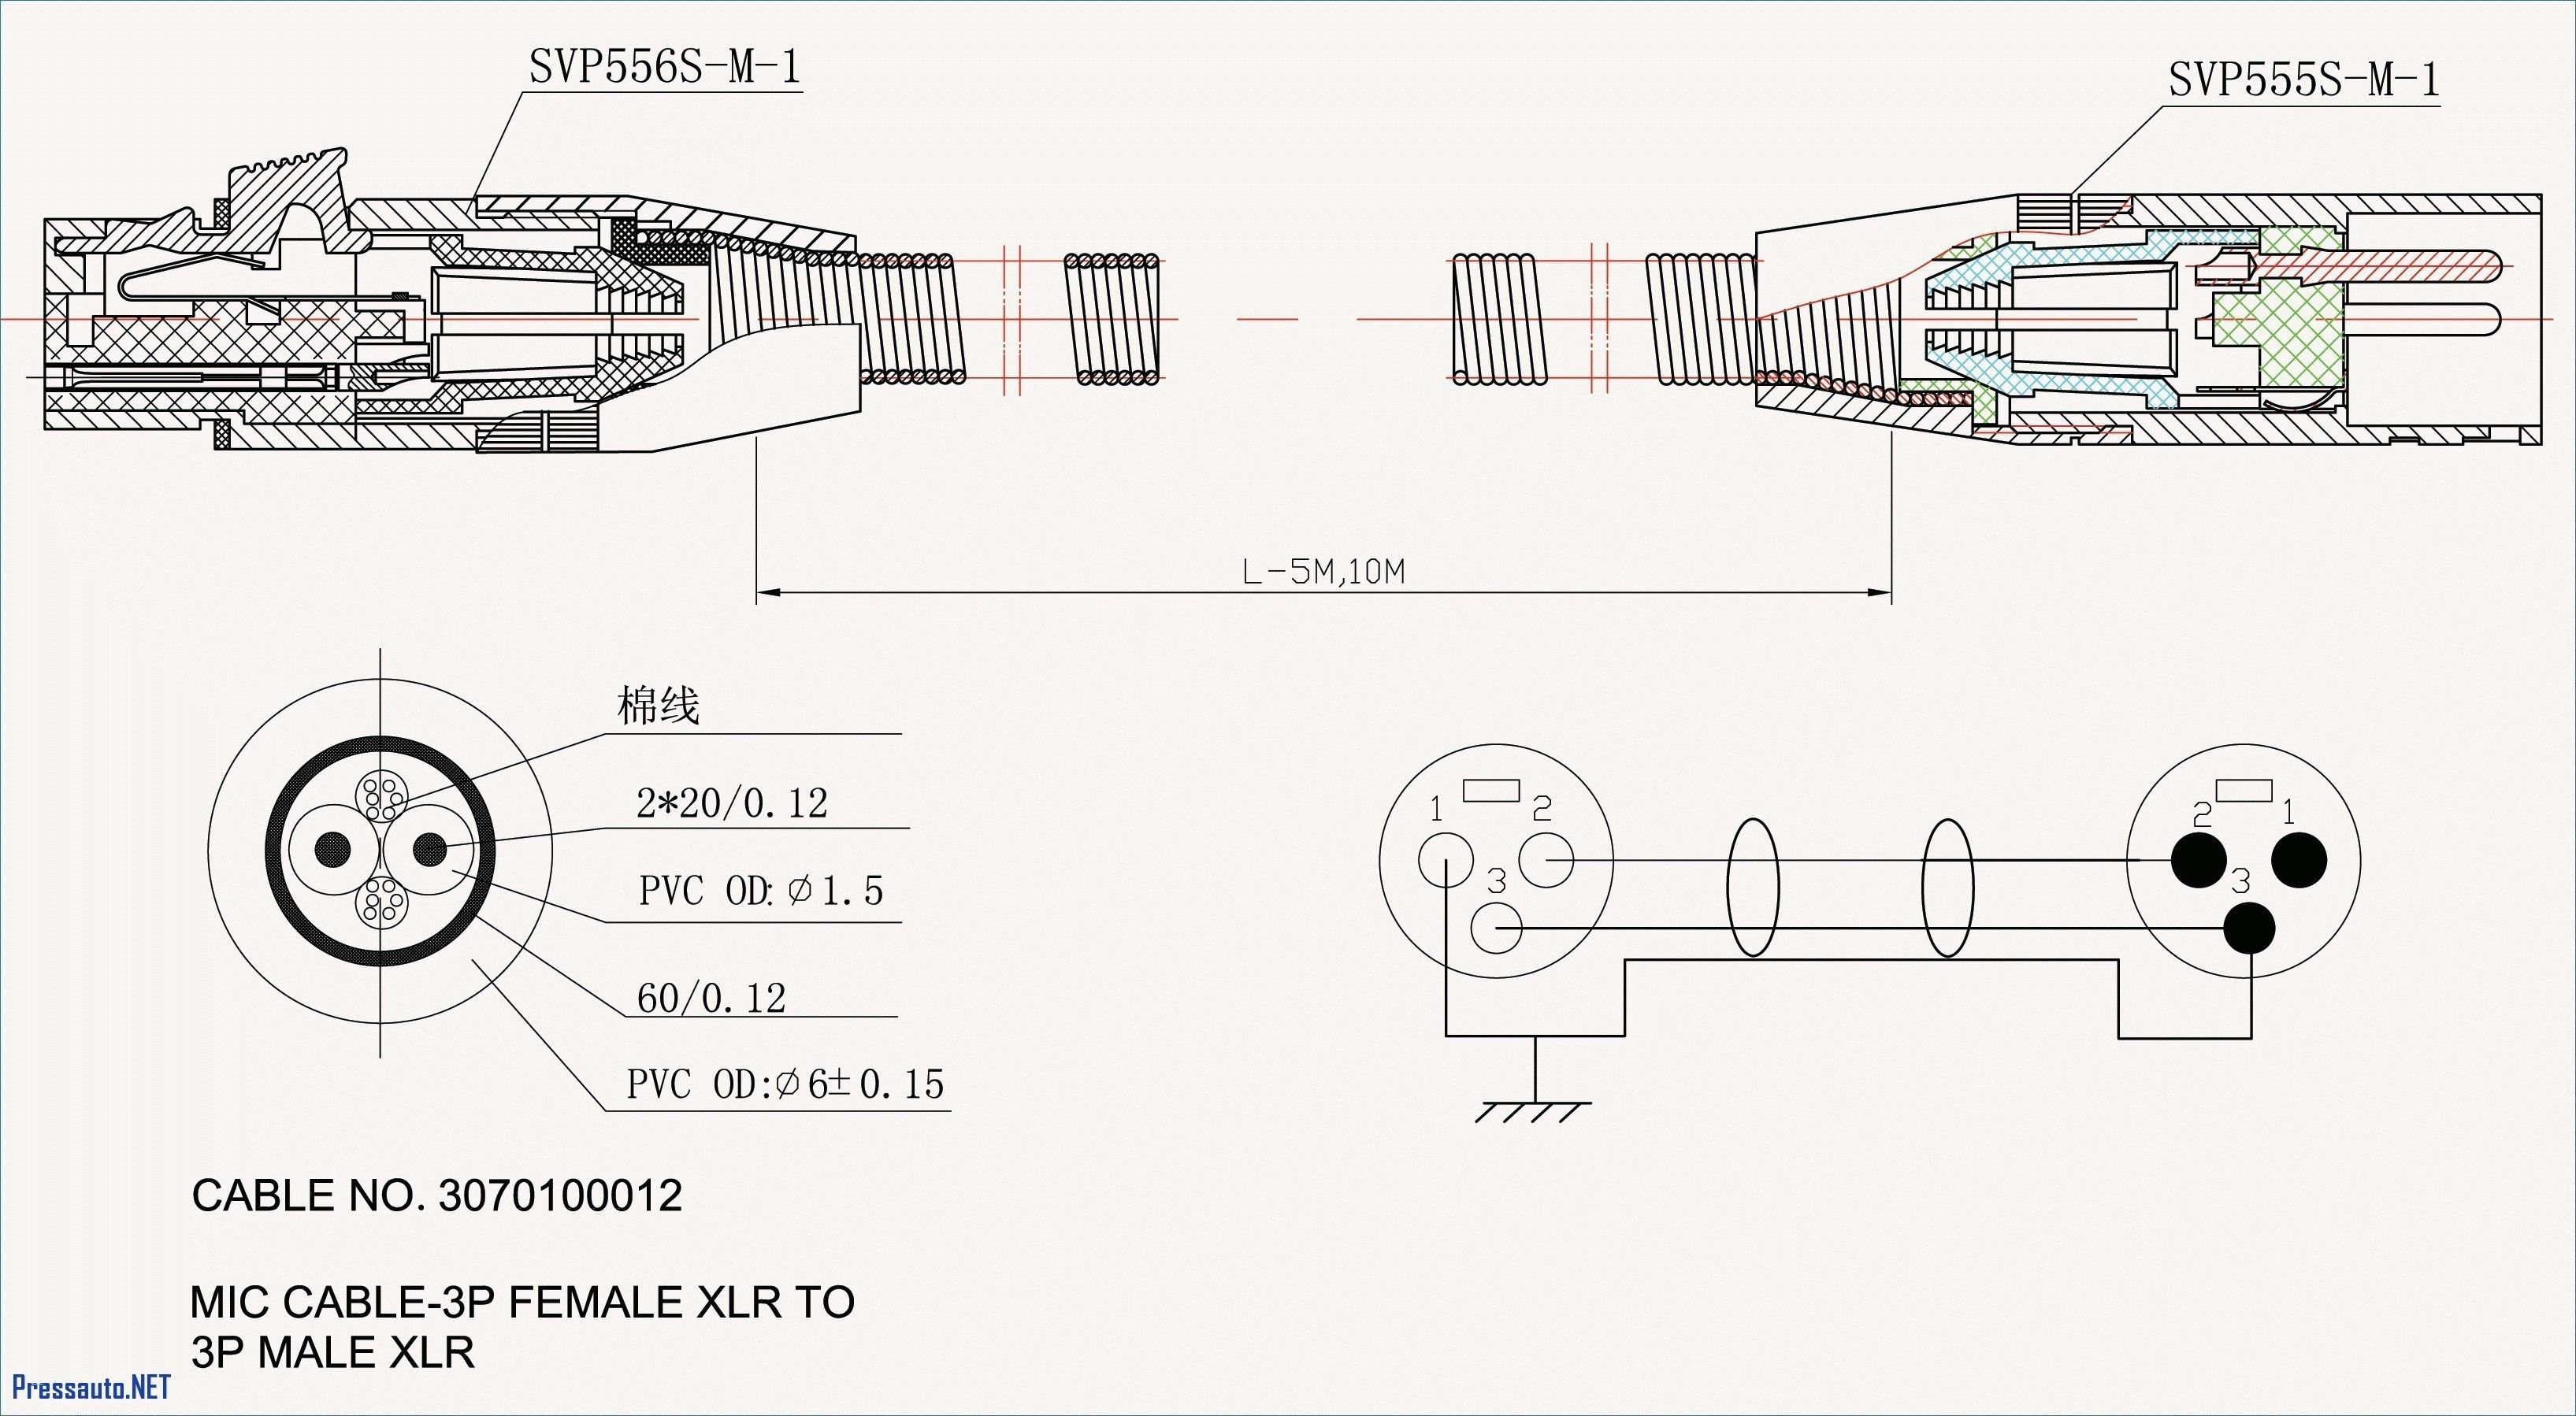 Street Light Photocell Wiring Diagram In 2020 Outlet Wiring Garage Design Electrical Wiring Diagram